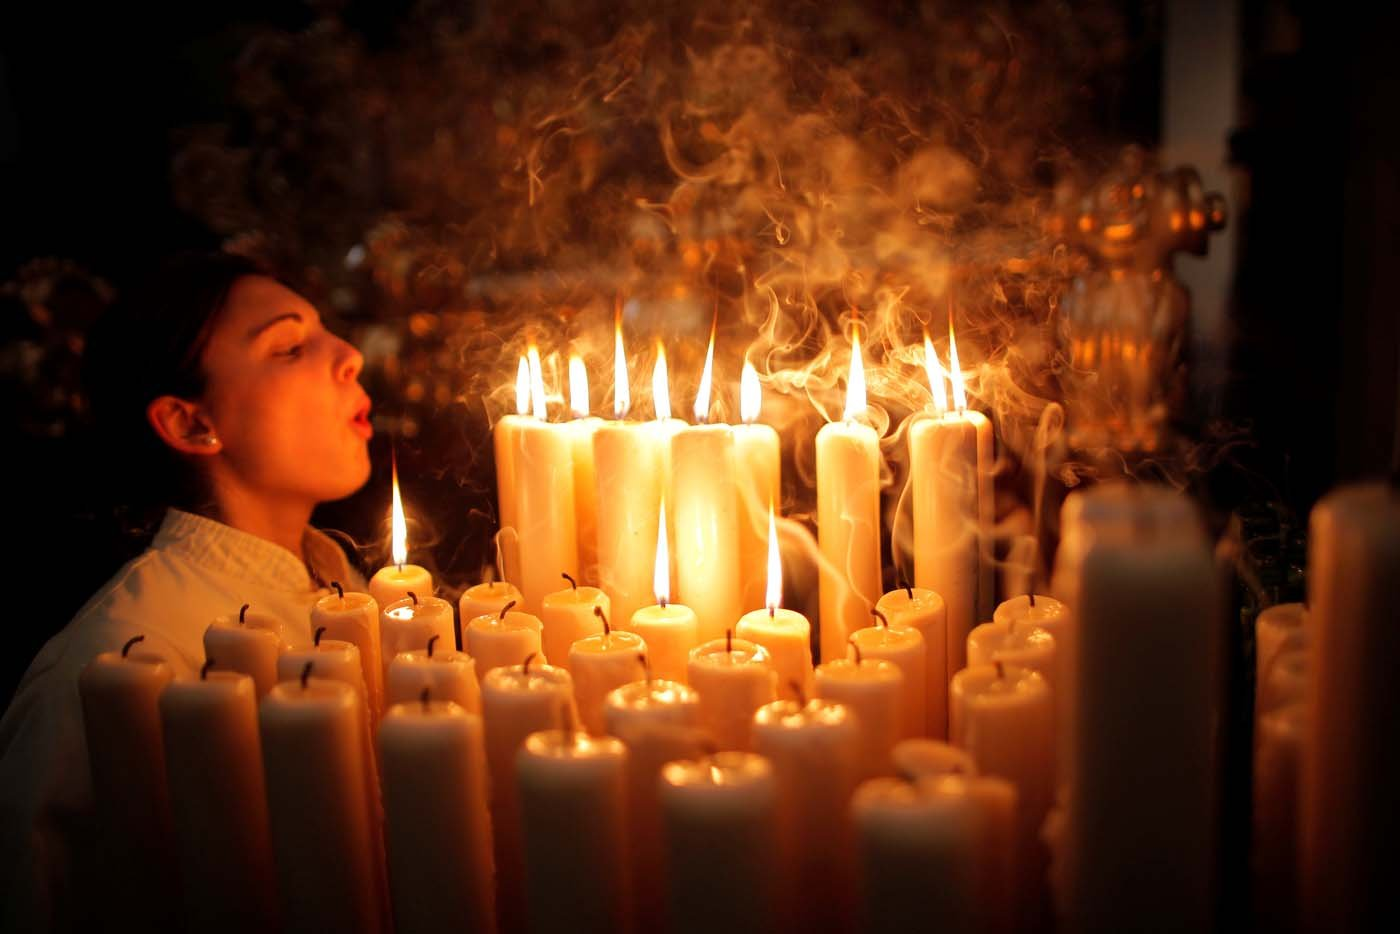 """A penitent of """"Lagrimas and Favores"""" blows out candles inside a church as she takes part in a Palm Sunday procession, marking the start of the Holy Week in Malaga, southern Spain, April 9, 2017. REUTERS/Jon Nazca     TPX IMAGES OF THE DAY"""